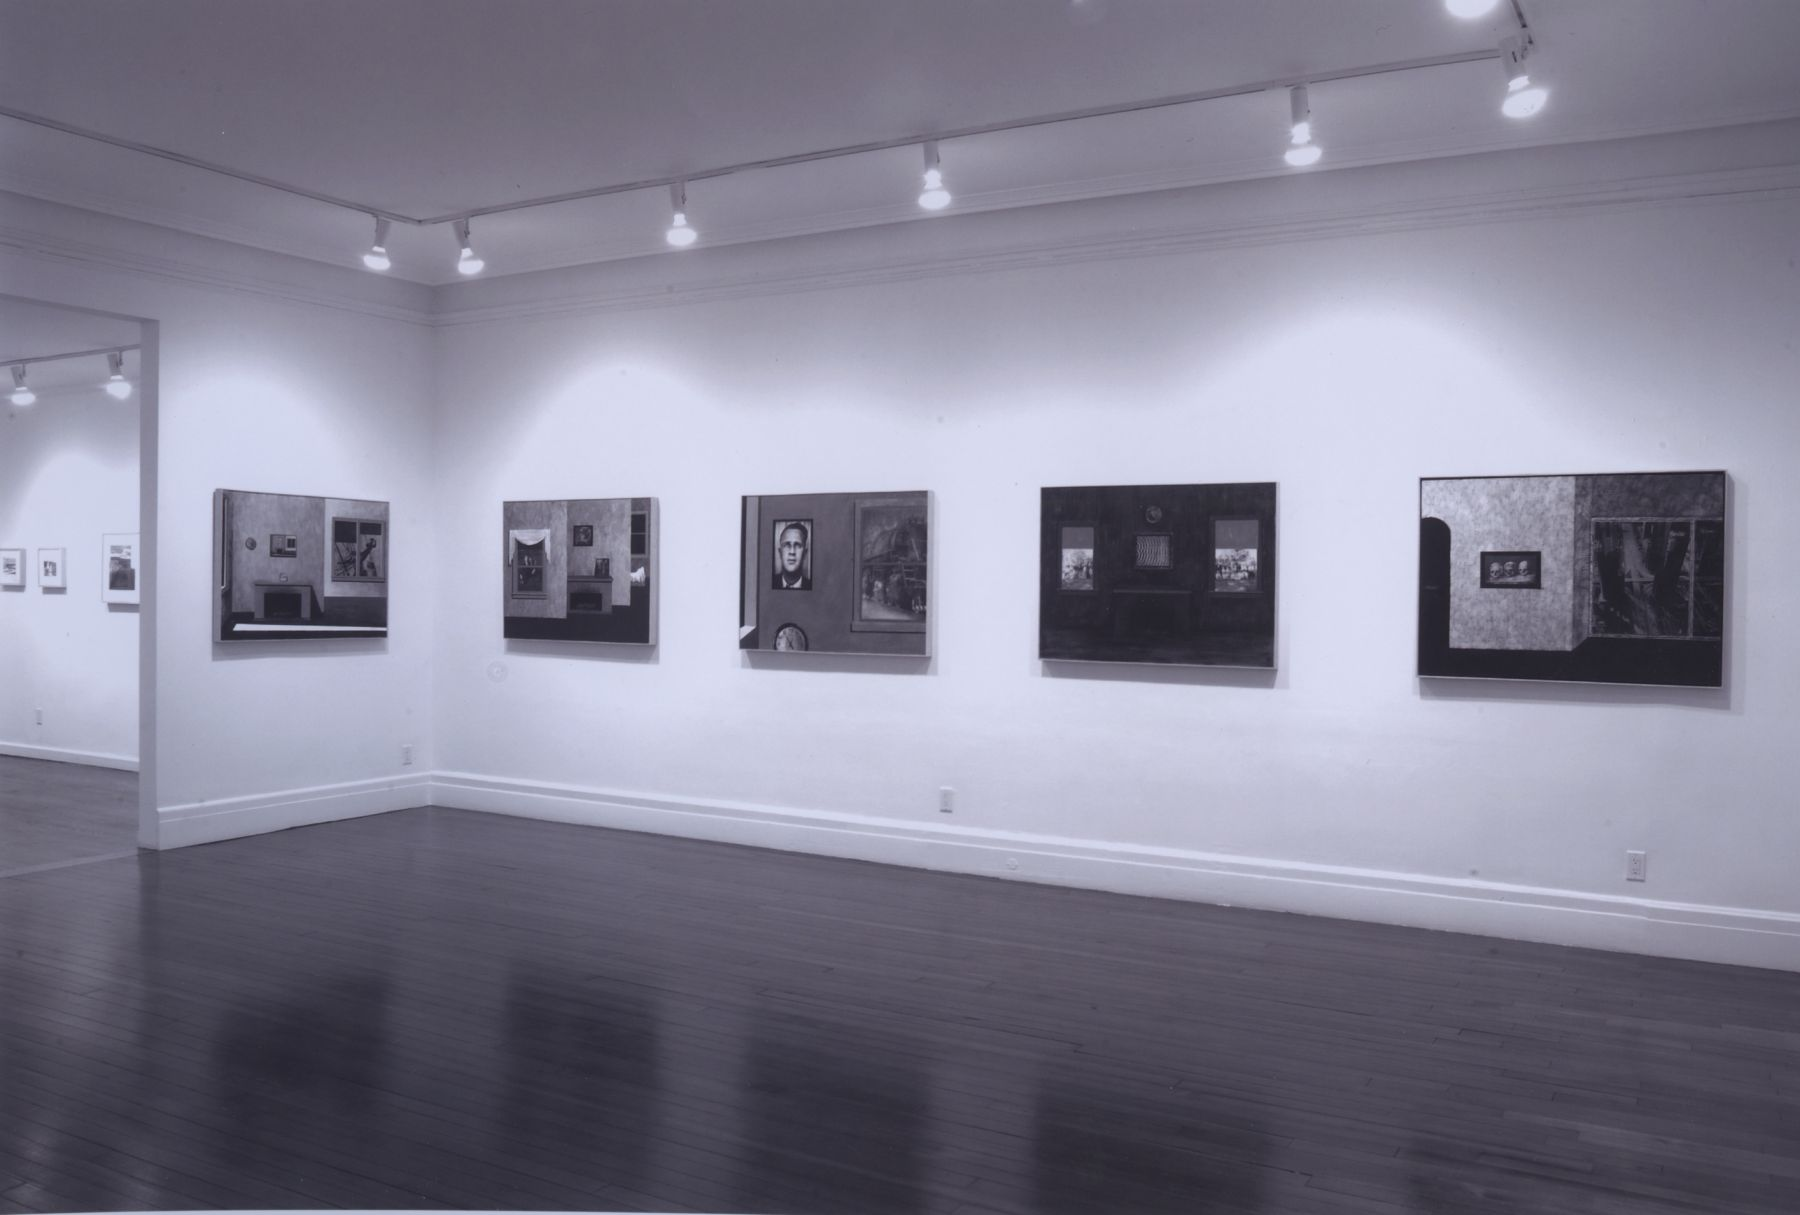 Installation view, Robert Morris: Waxing Time, Waning Light: New Paintings, 18 EAST 77